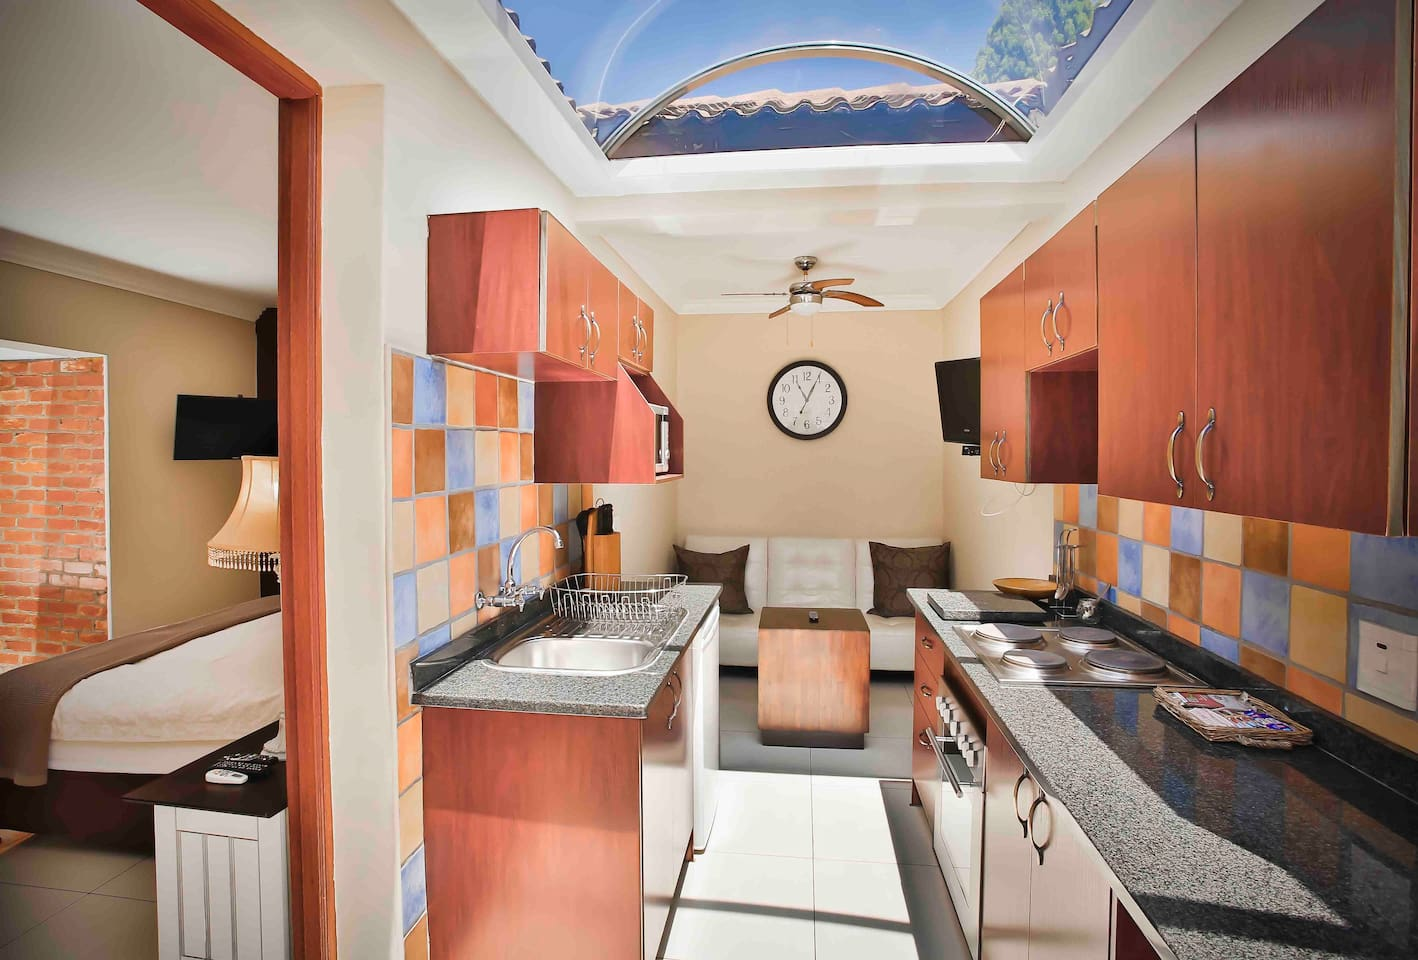 French Quarter has a fully equipped kitchen and lounge area with a glass roof